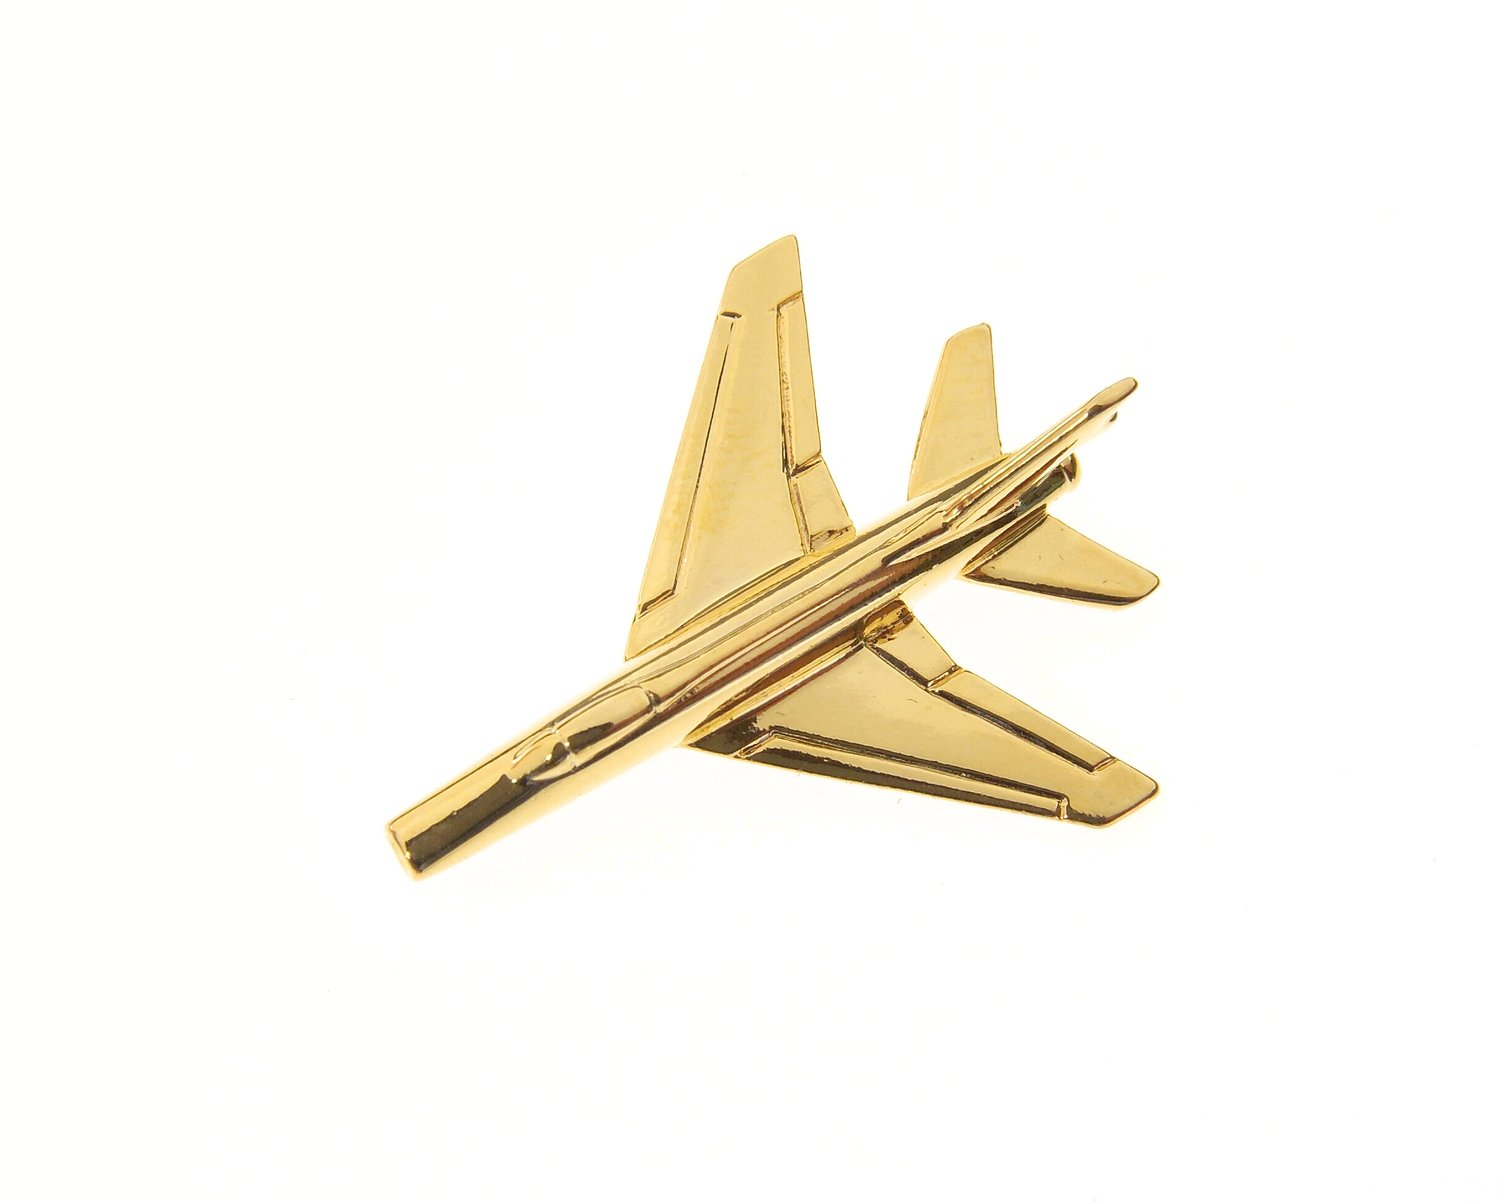 F100 Super Sabre Gold Plated Tie / Lapel Pin